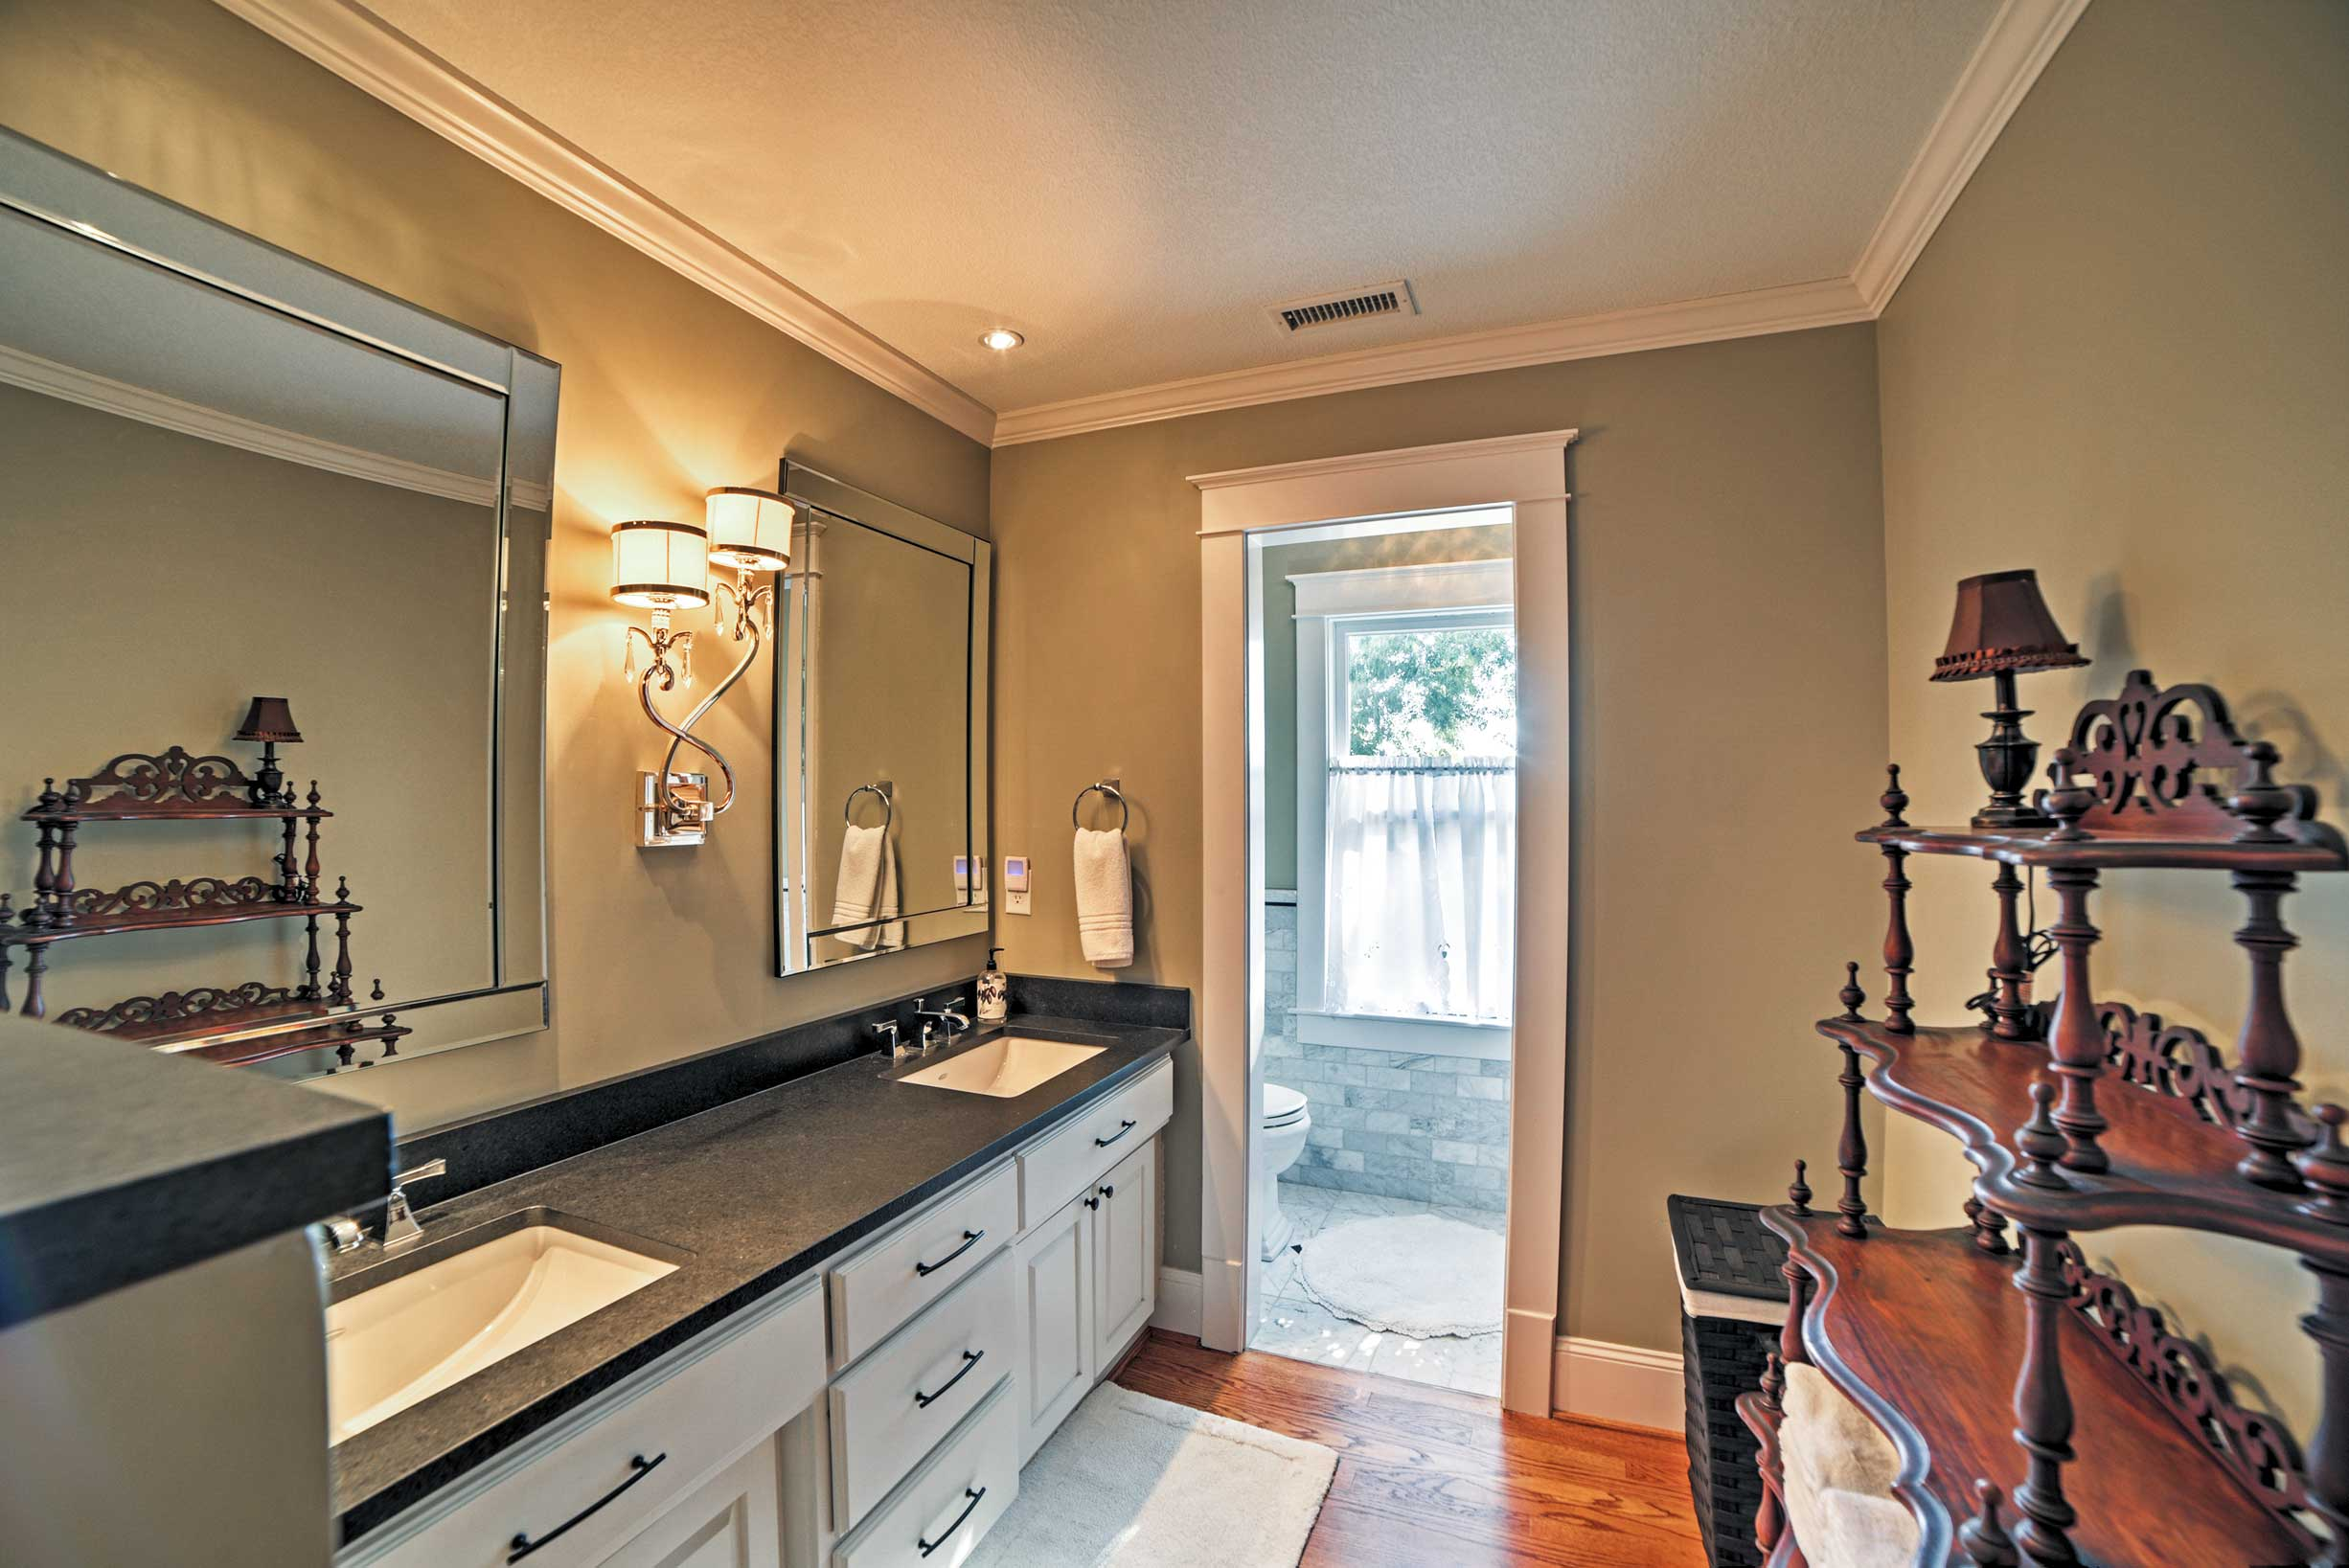 The bathroom includes double sinks.